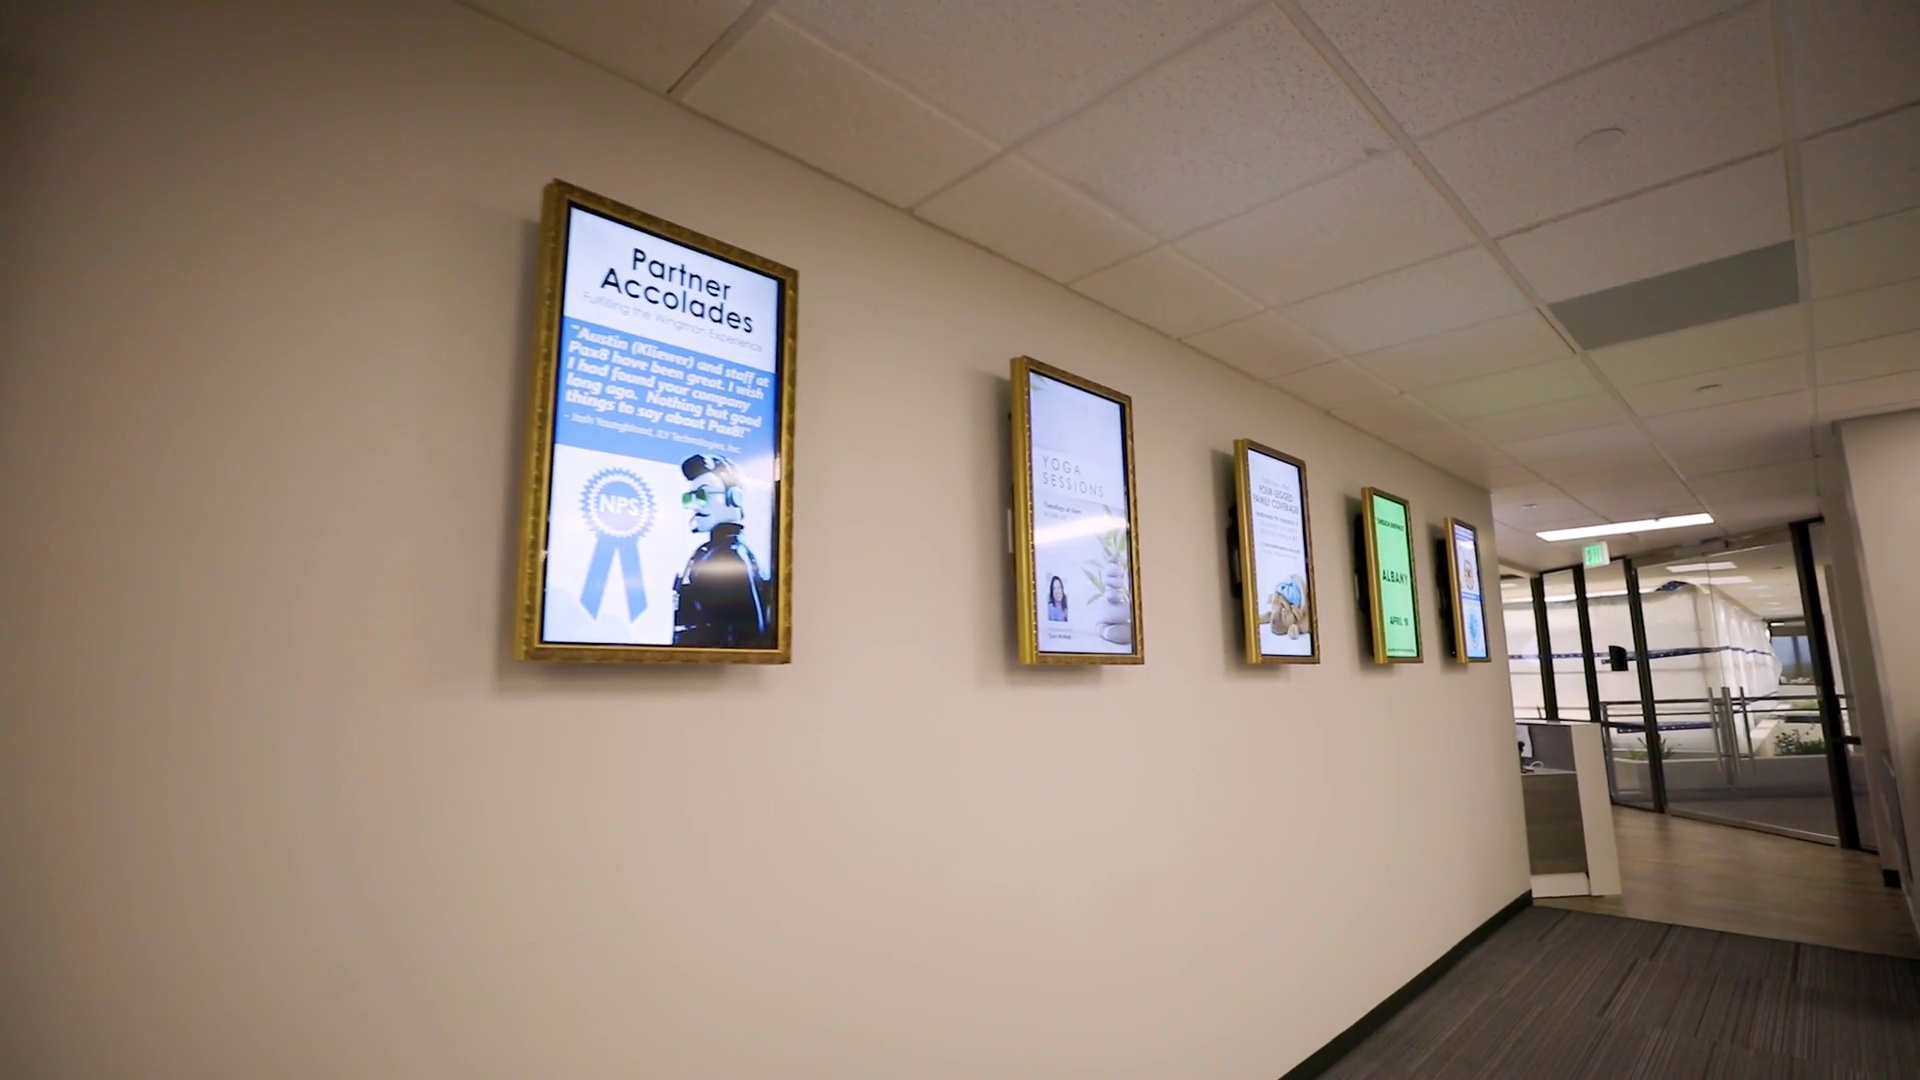 pax8 using fwi's office digital signage software